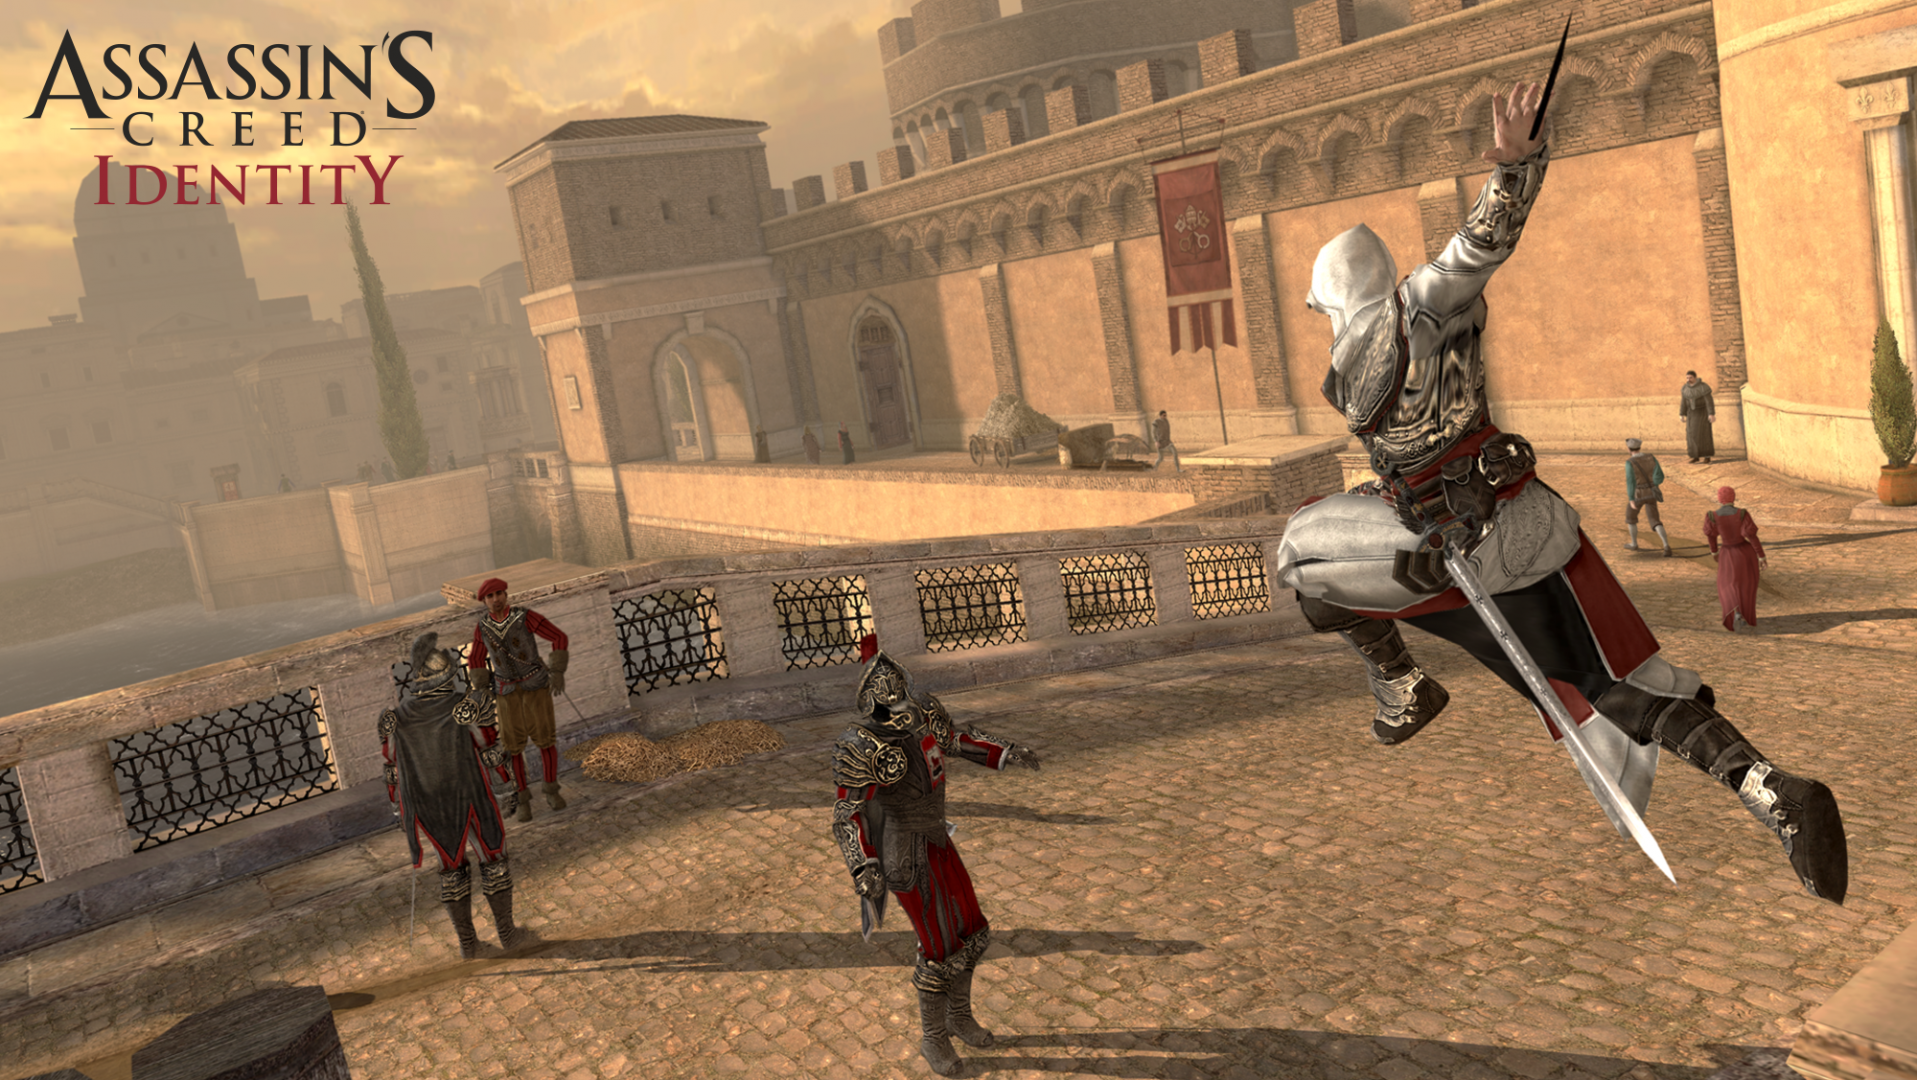 New Assassin's Creed Game Announced For iOS Devices